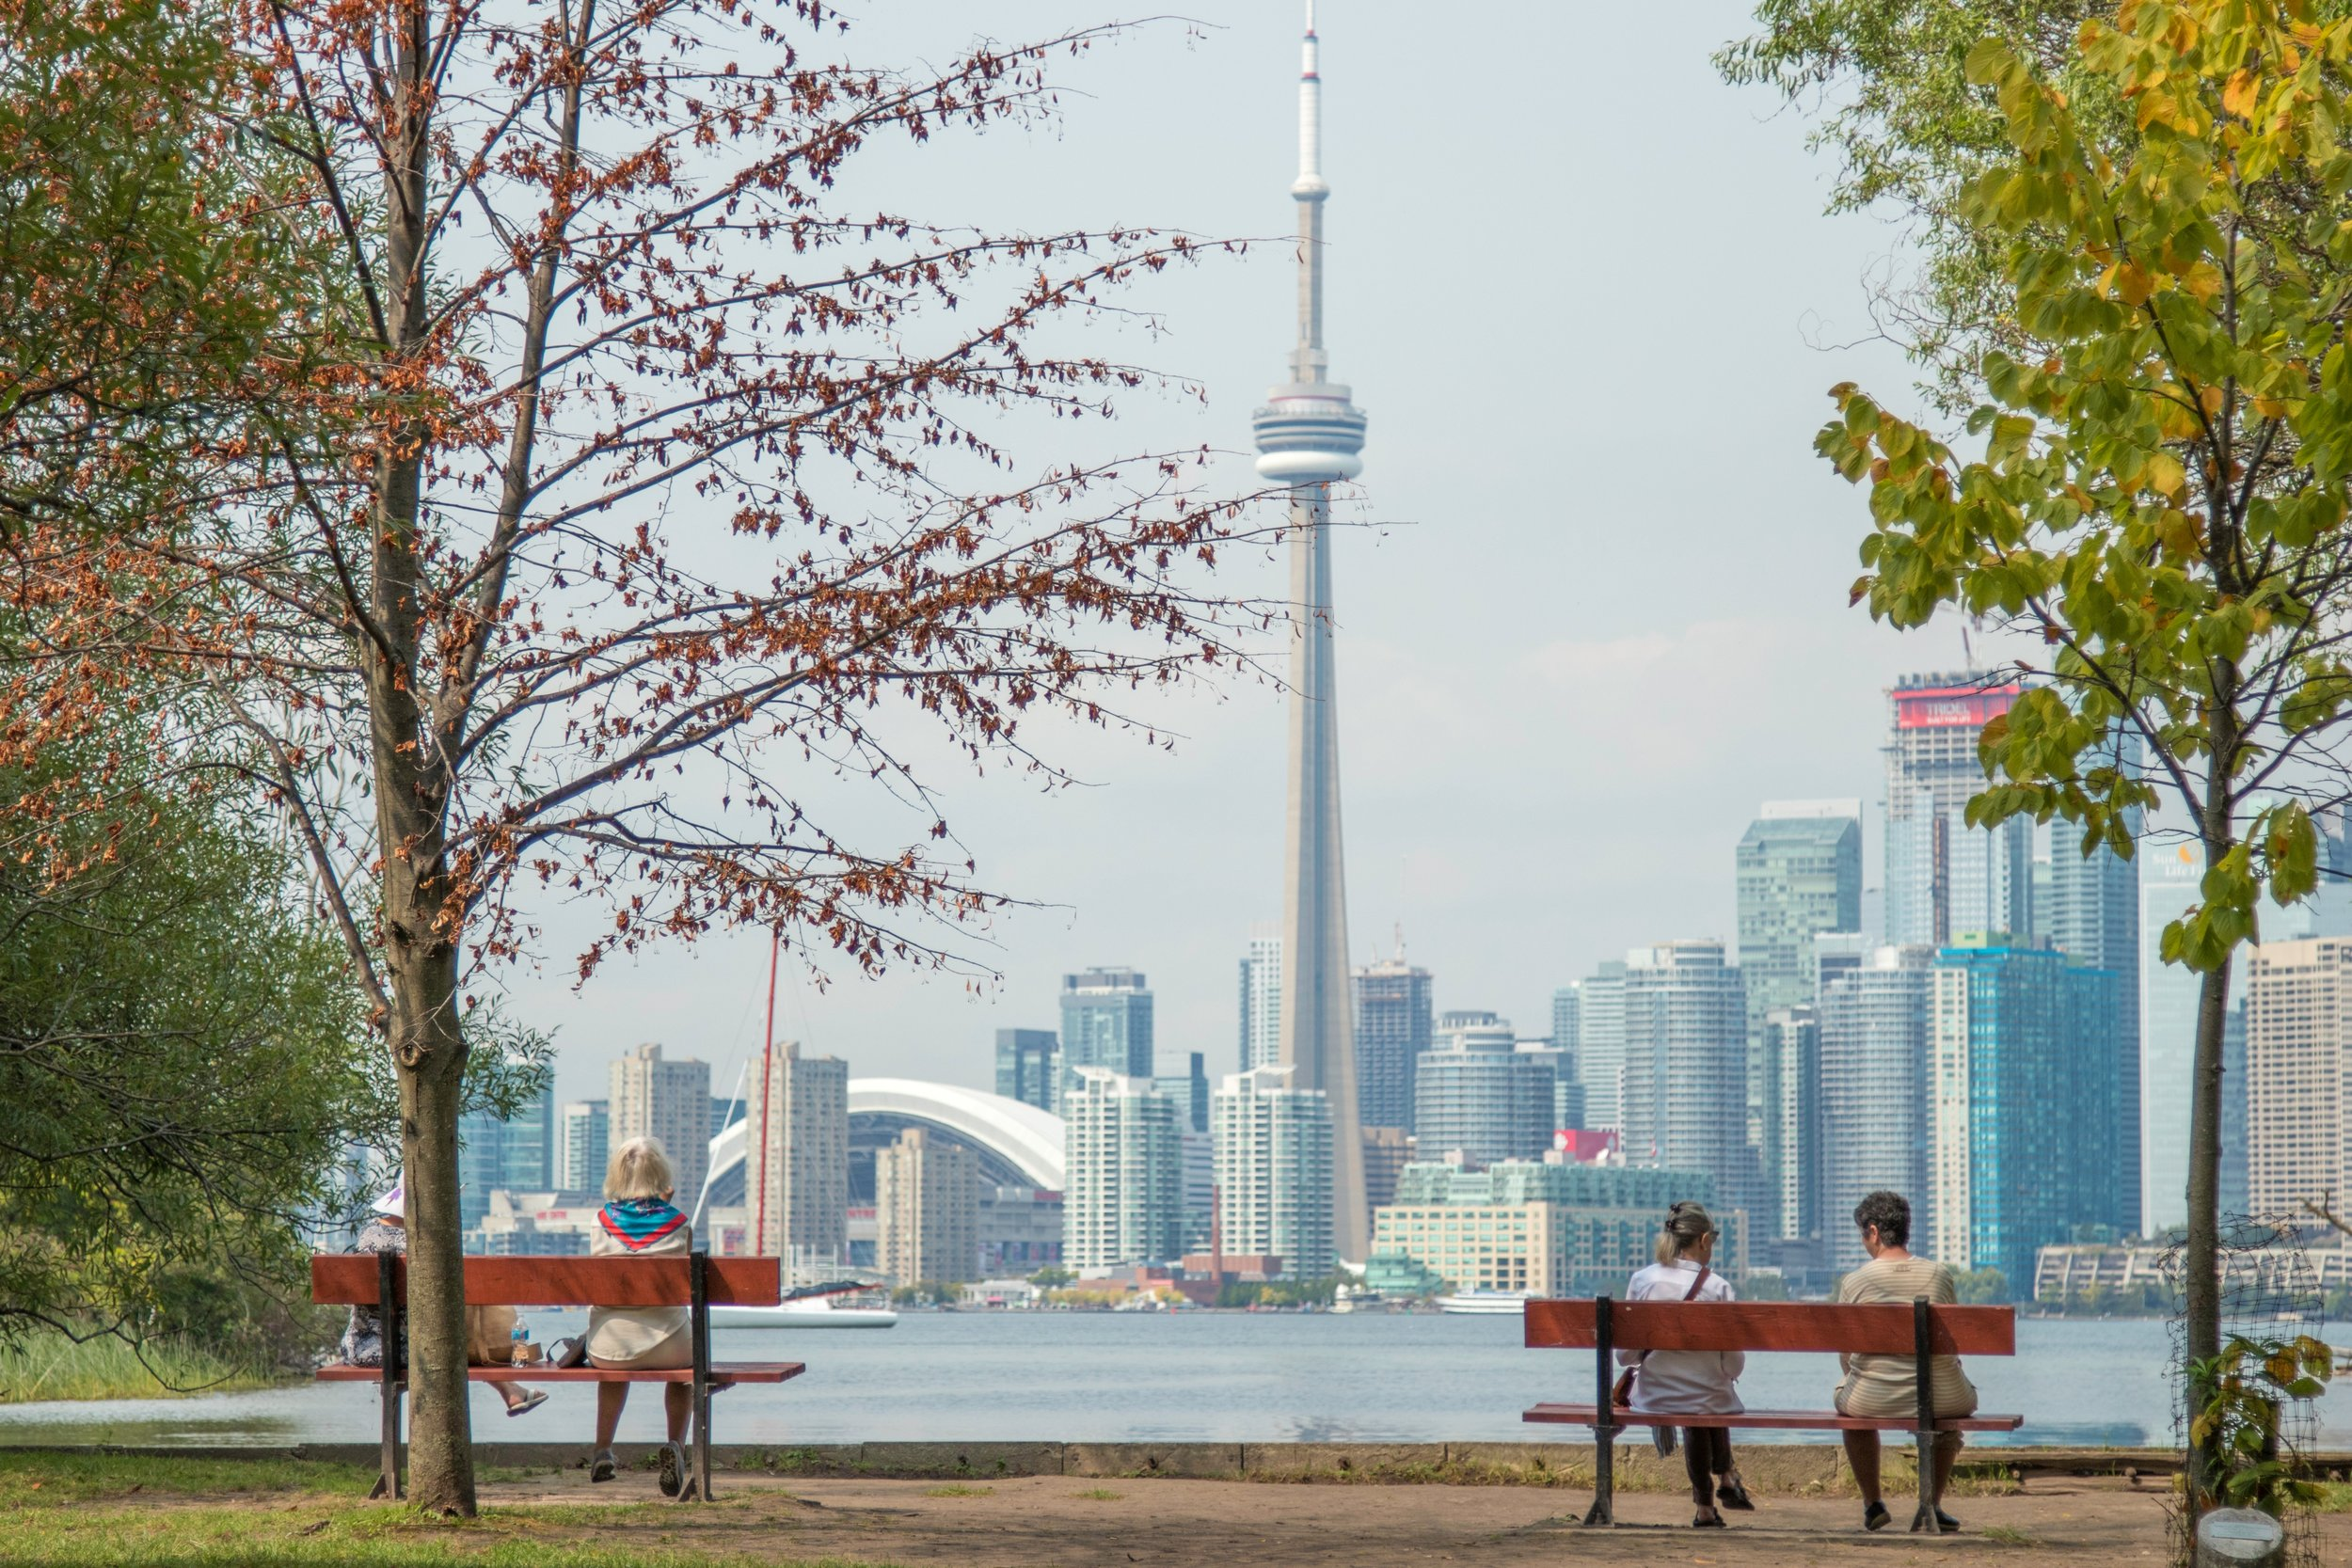 Toronto is growing at such a rate that residential construction cannot keep pace.